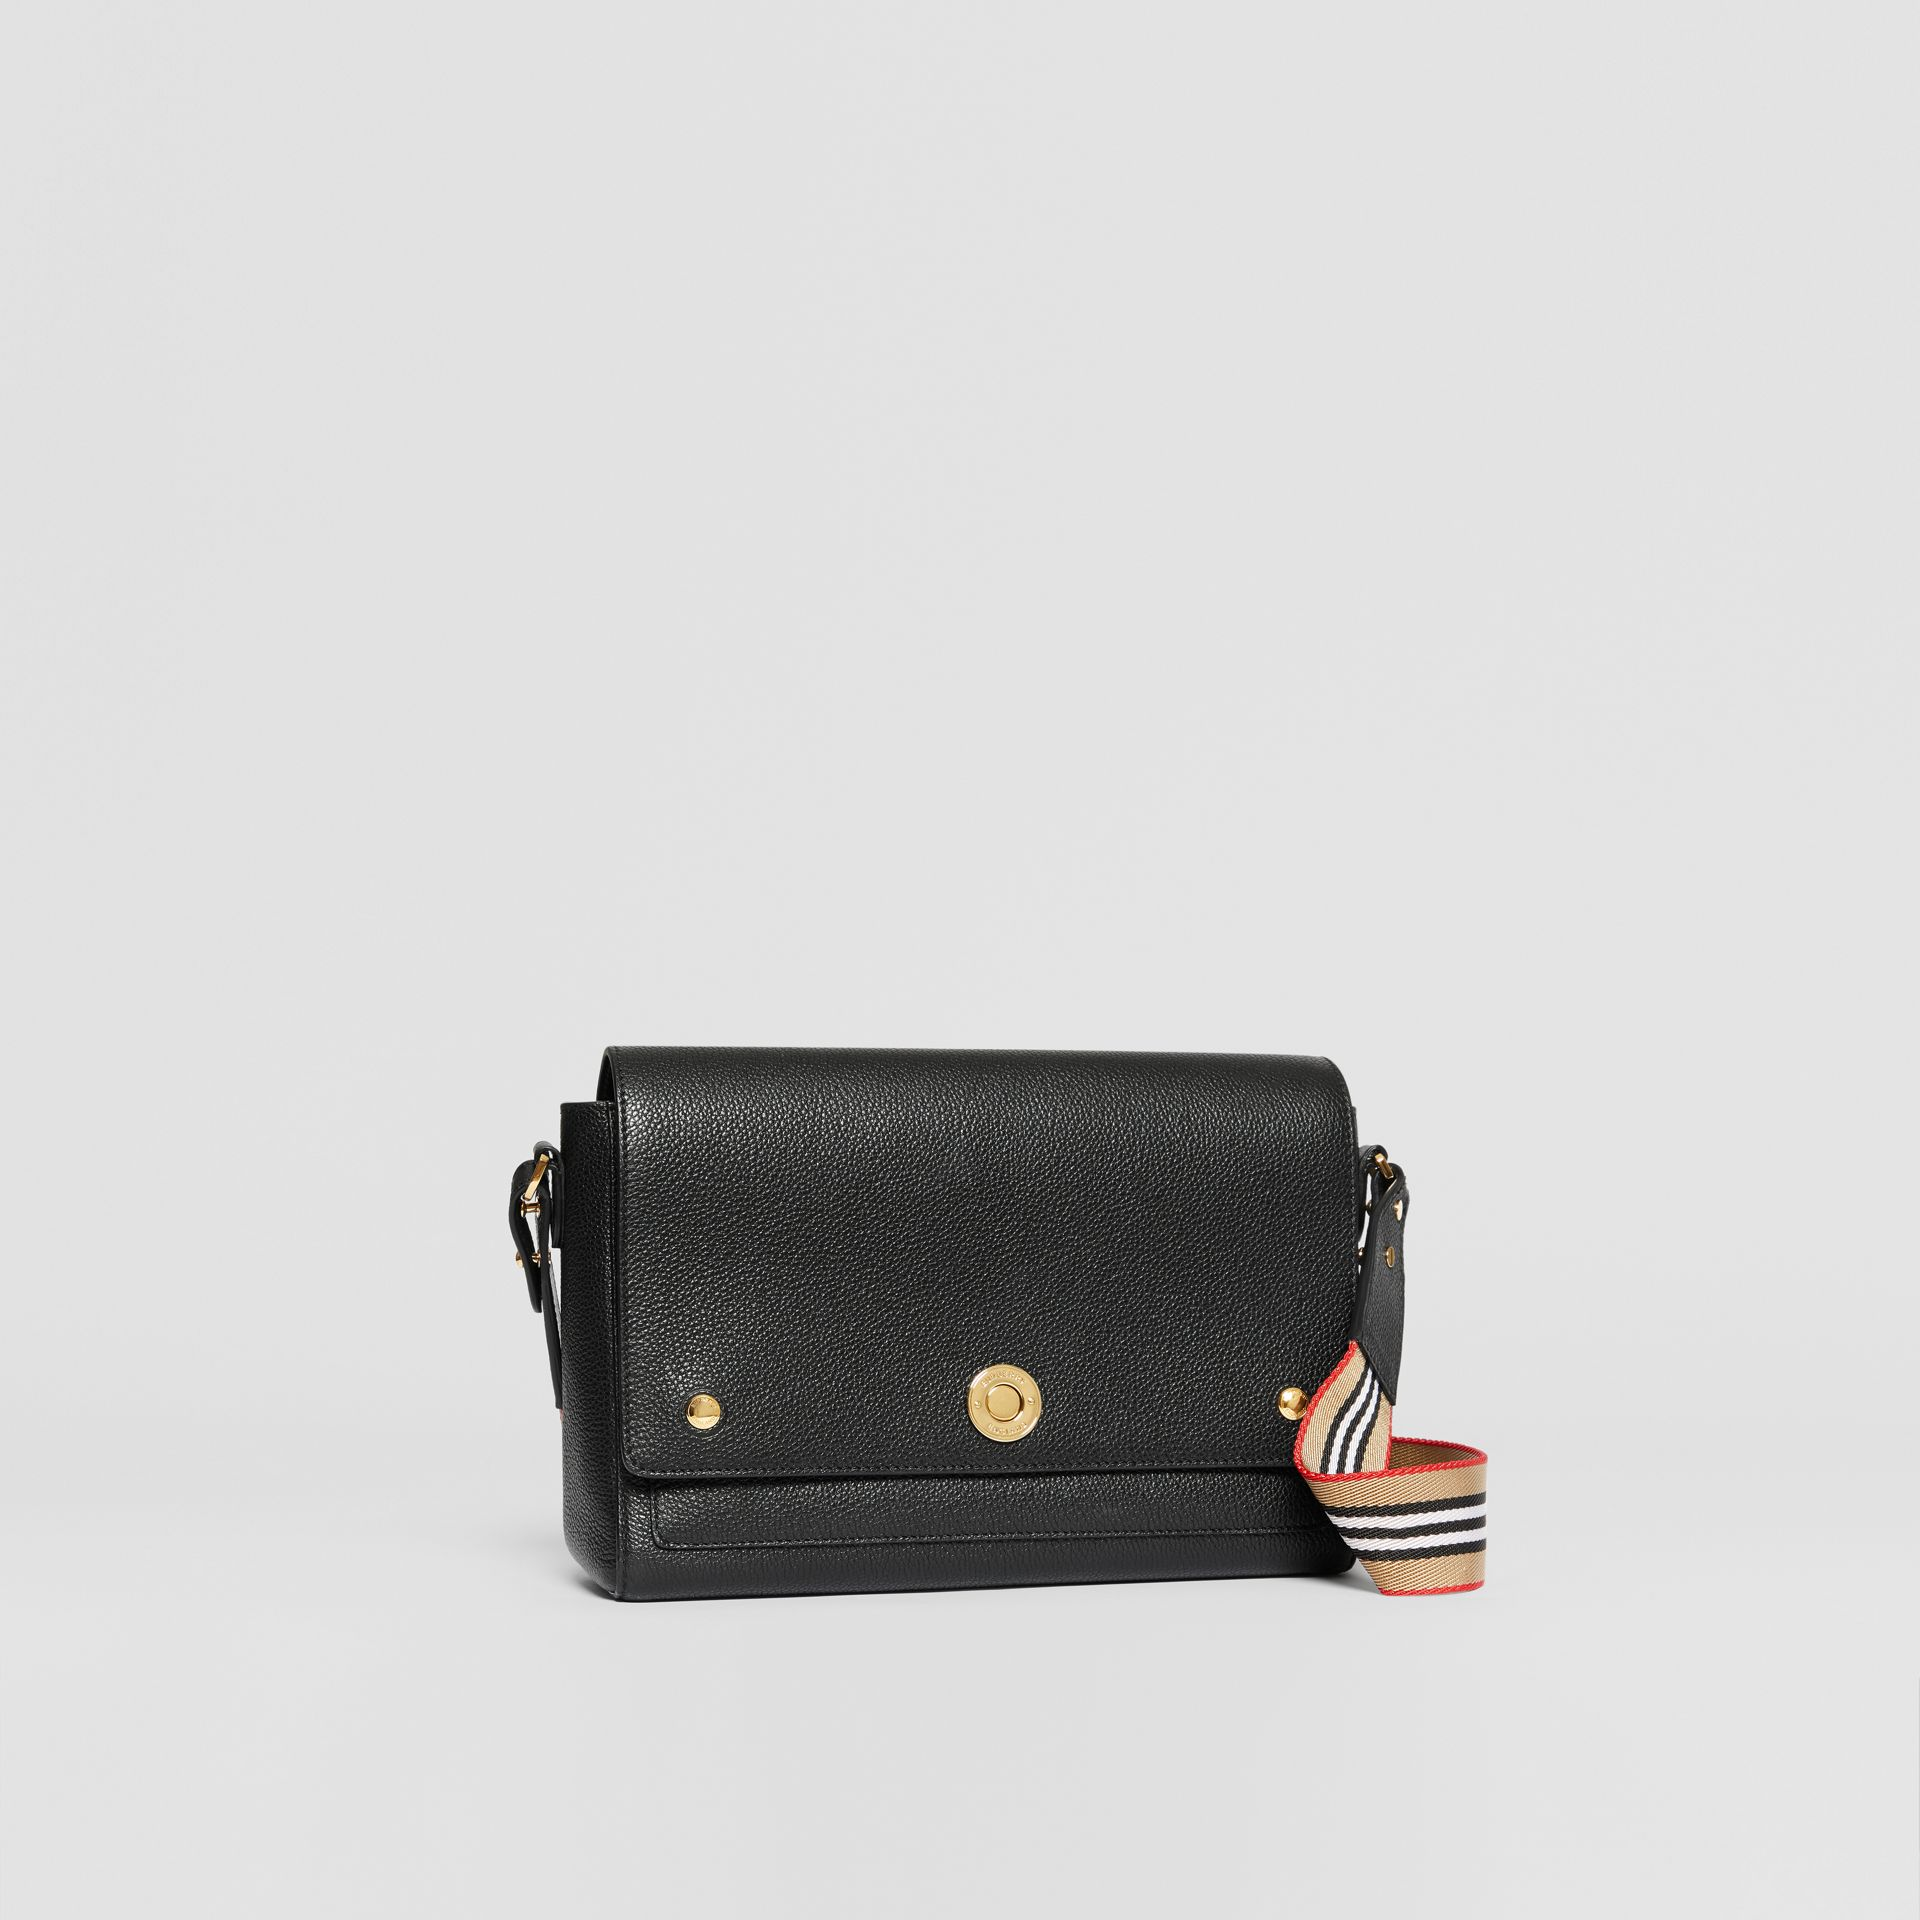 Grainy Leather Note Crossbody Bag in Black - Women | Burberry - gallery image 6